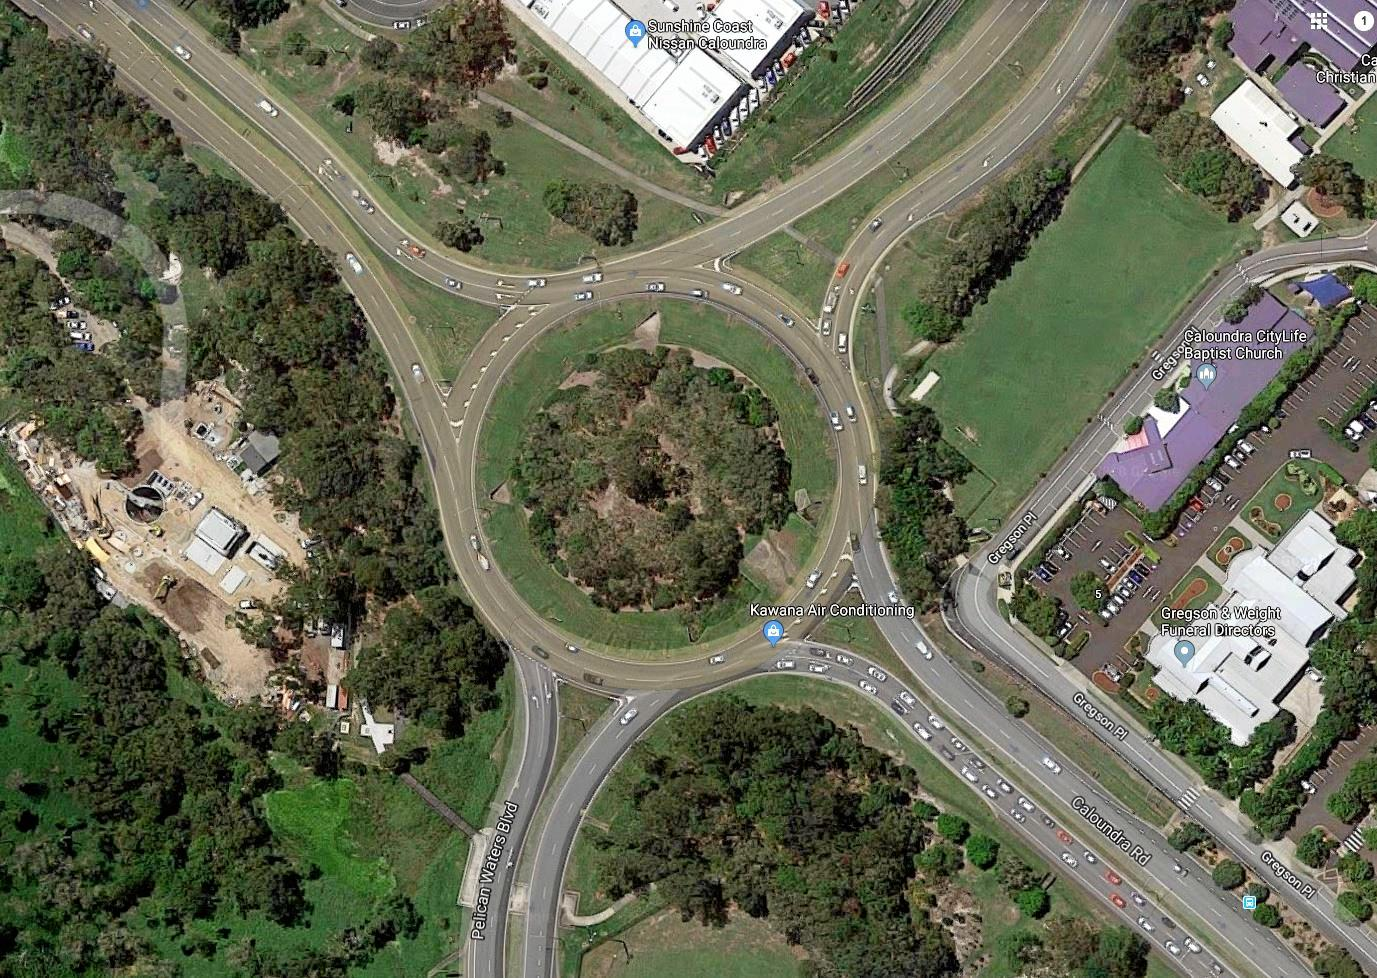 The State Government plans to install traffic lights at the intersection of Nicklin Way and Caloundra Road as part of its proposed upgrades for the junction.